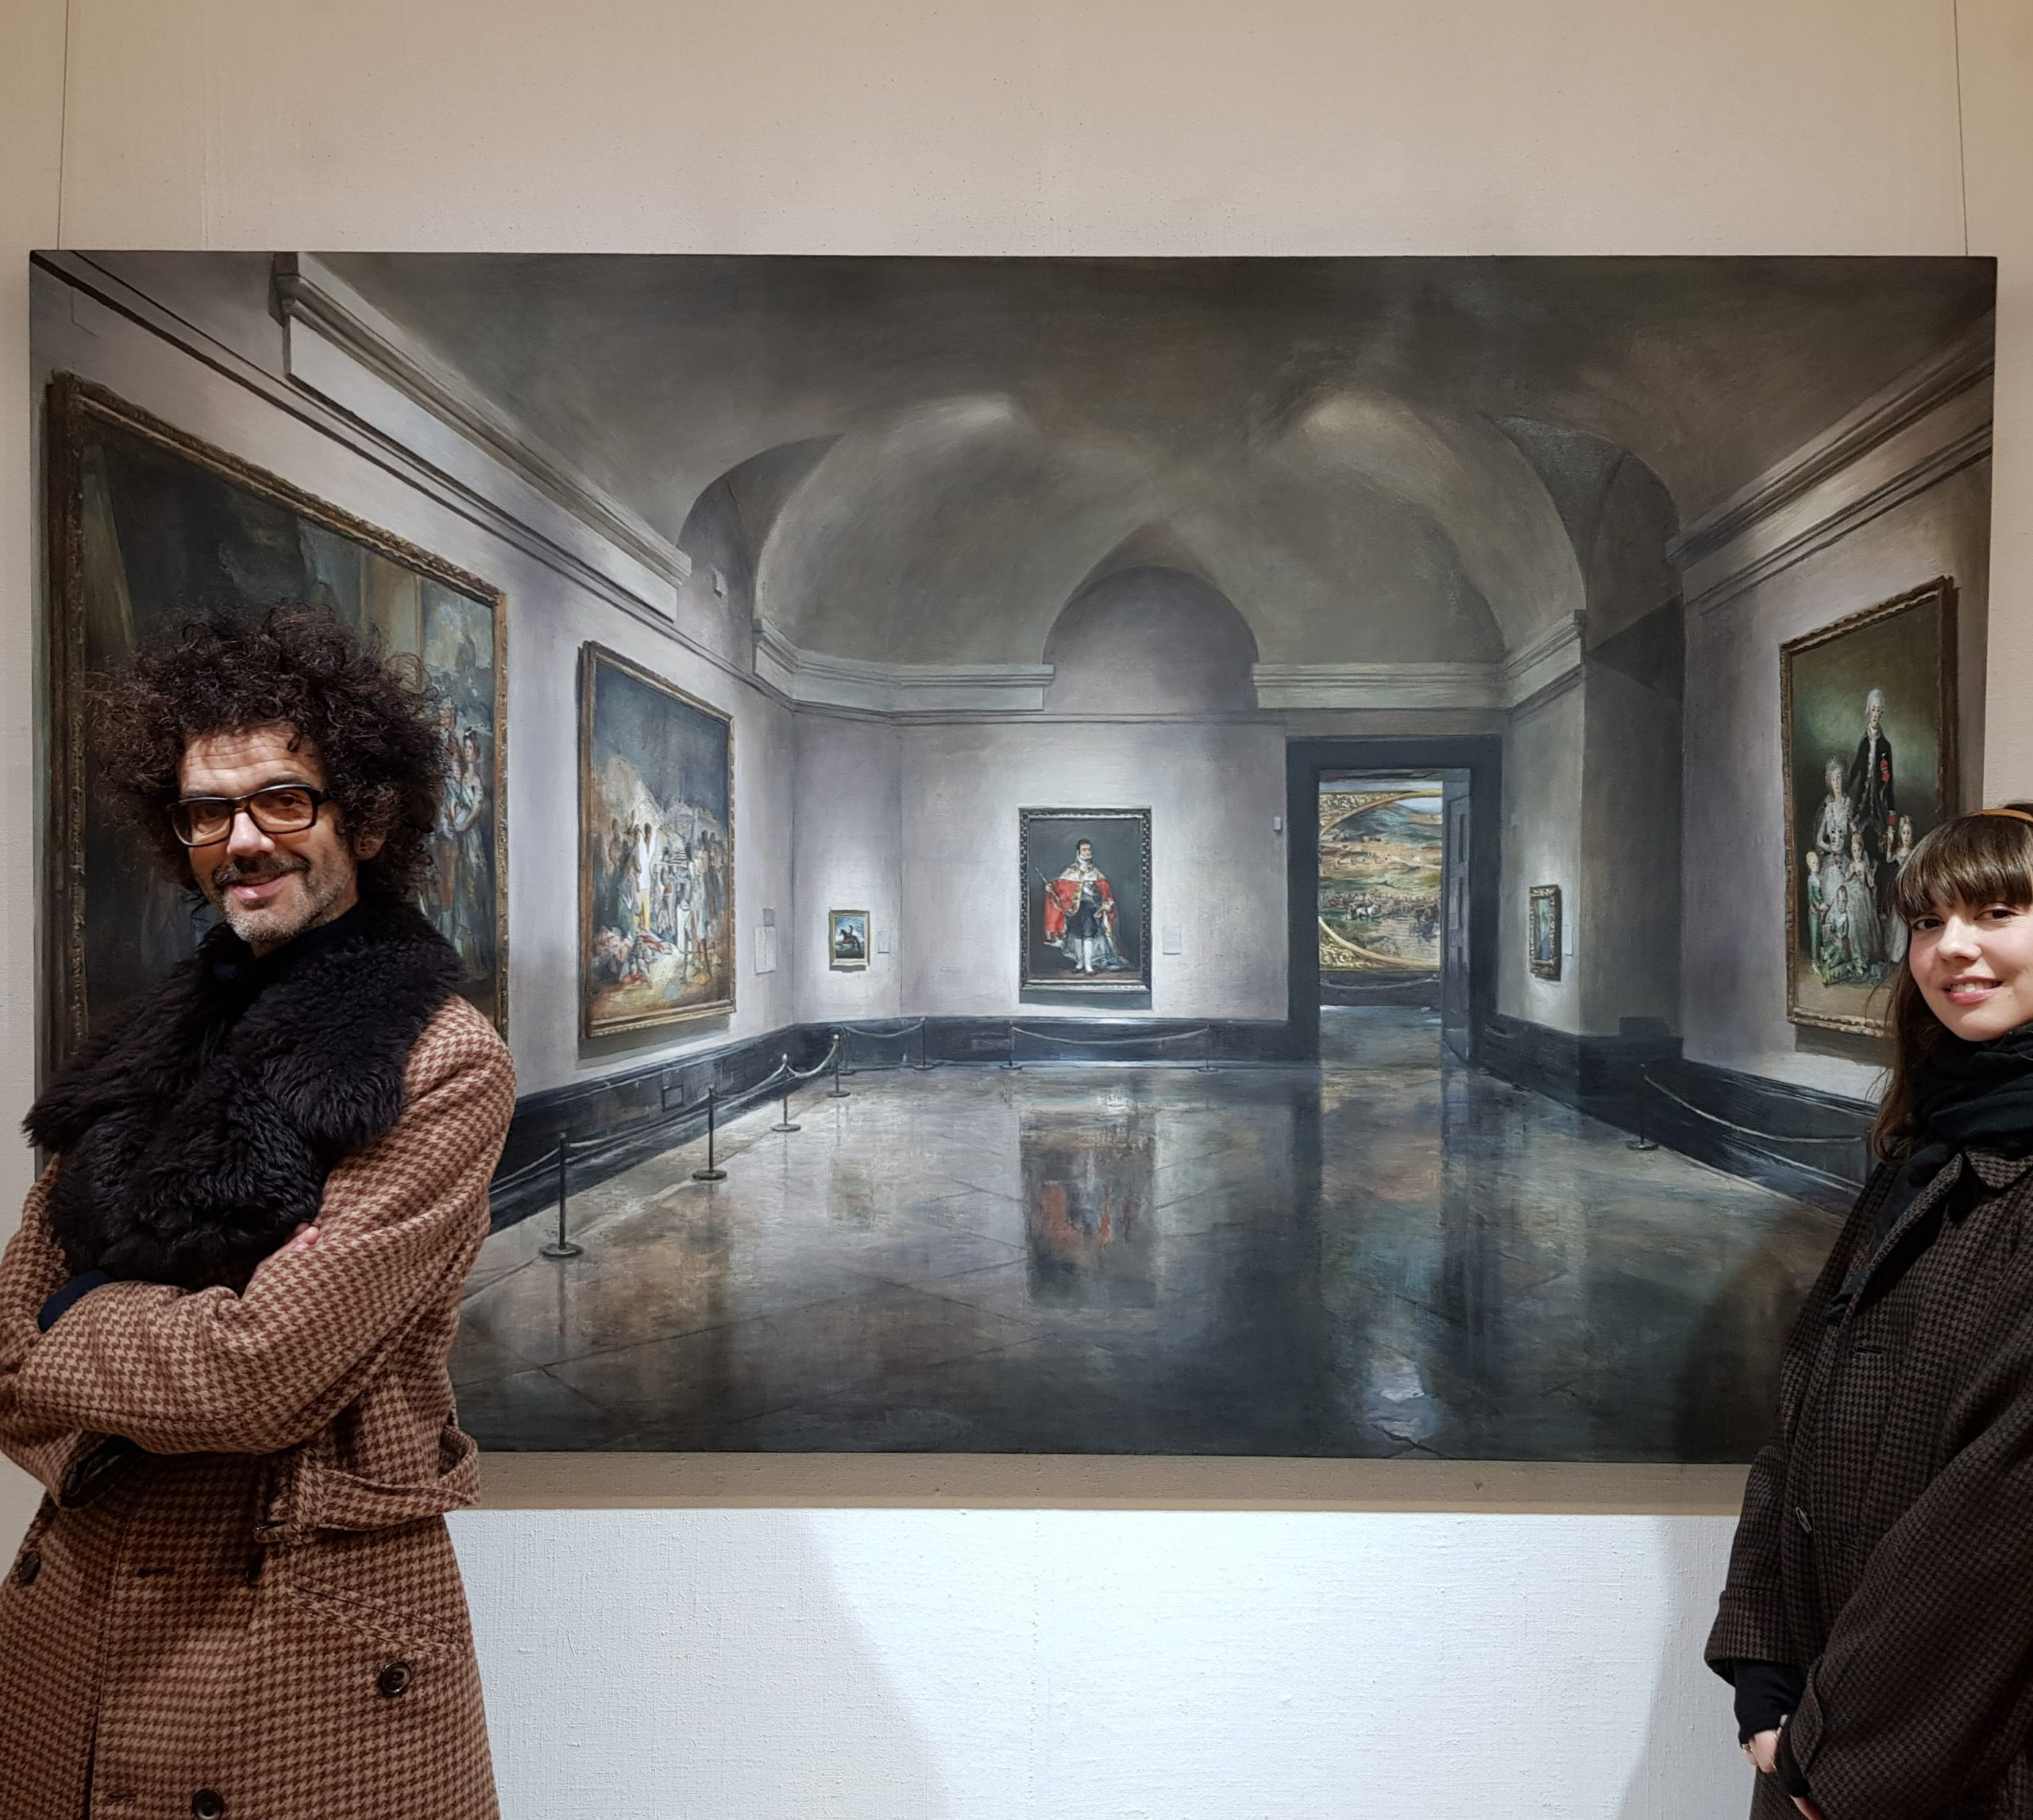 Frankie Poullain and Diane Birch view Goya in the Prado painting by Christian Furr at Richmond Atelier, Richmond upon Thames 2020